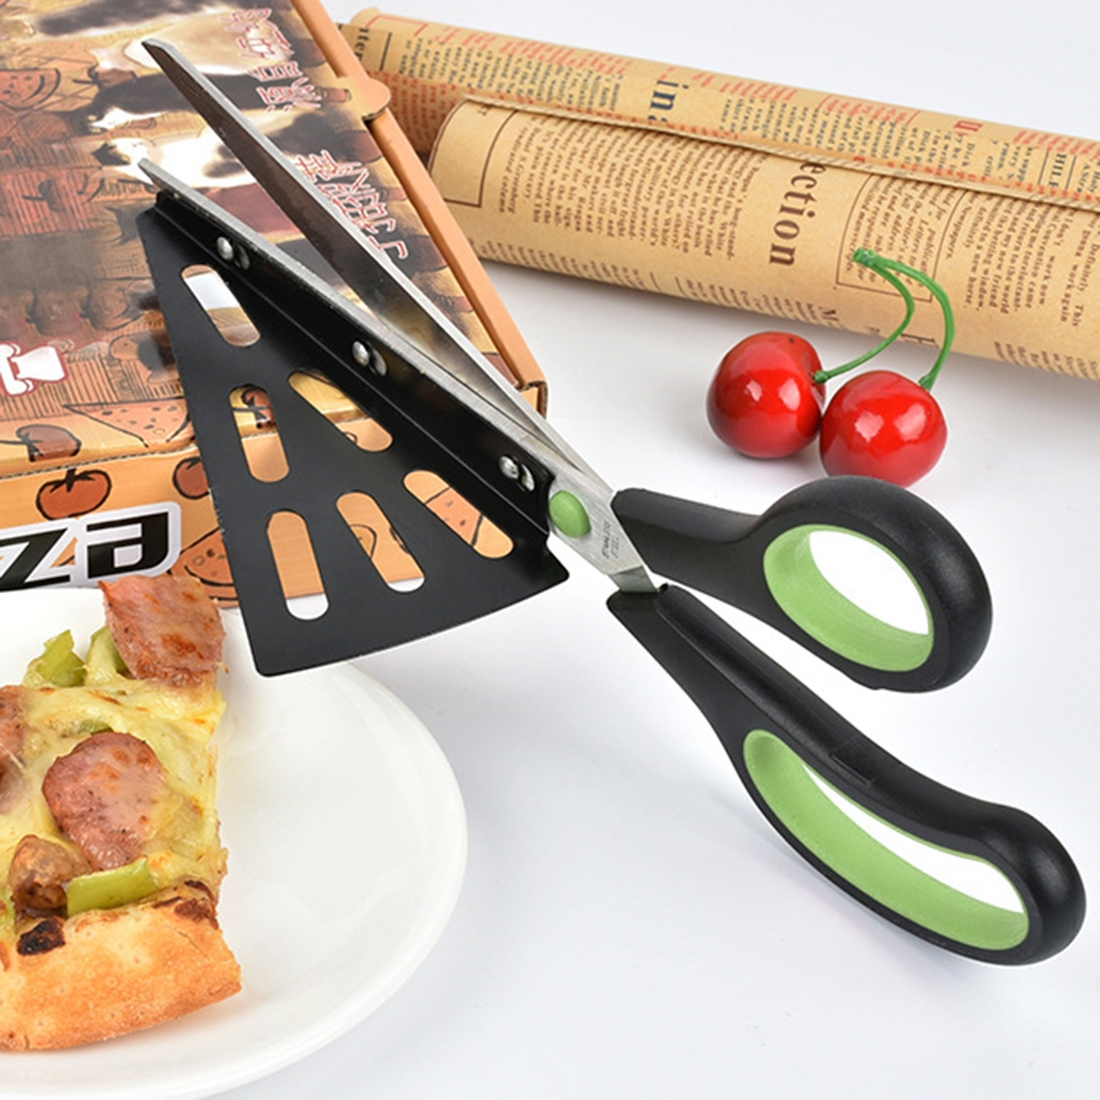 Pizza scissors with shovel pizza cutter best offer reviews for Gardening tools pakistan